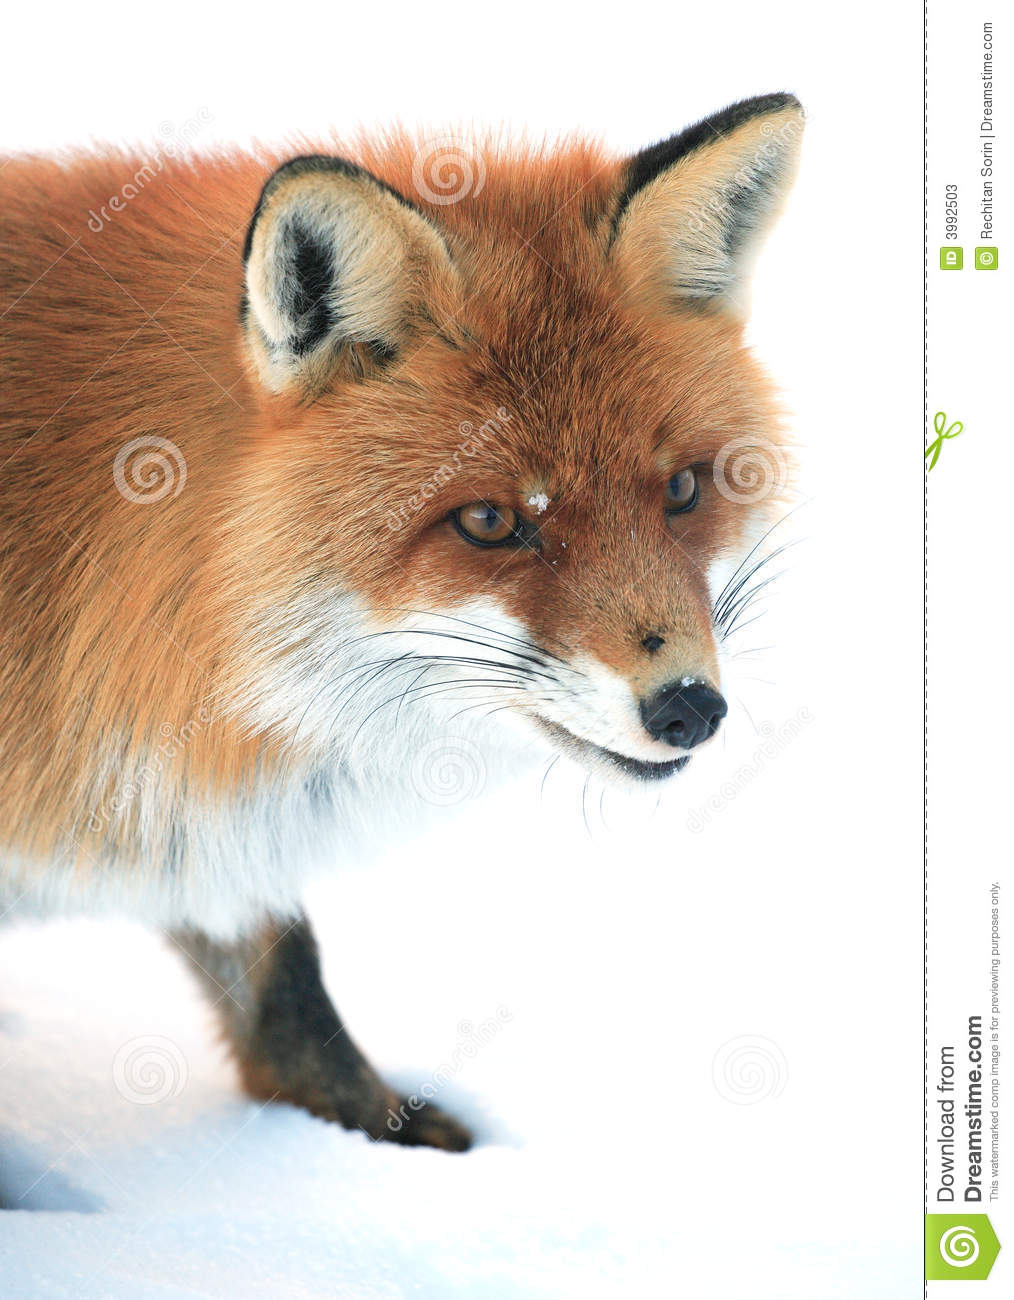 Wild fox stock image. Image of wild, attention, eyes ...